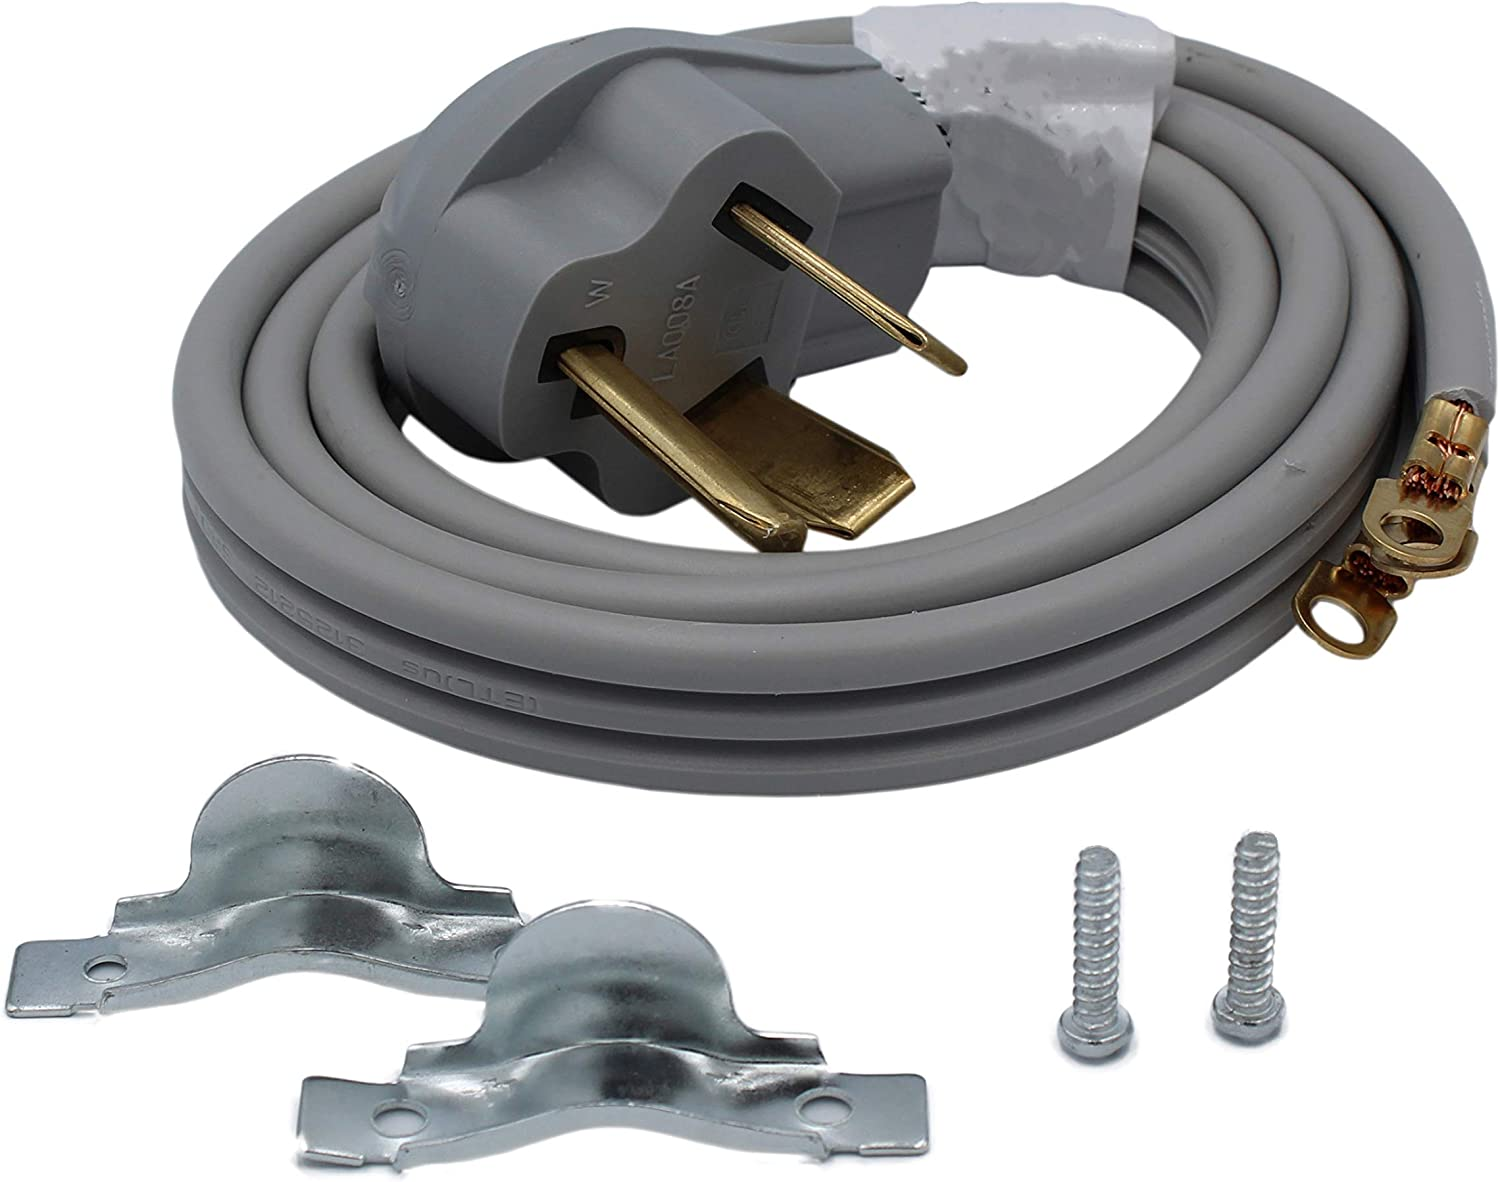 Supplying Demand 3 Prong Wire Dryer Power Cord 30 AMP 250 Volts 10 AWG Compatible With GE, LG, Frigidaire, Whirlpool, Maytag, Samsung (4 Foot)